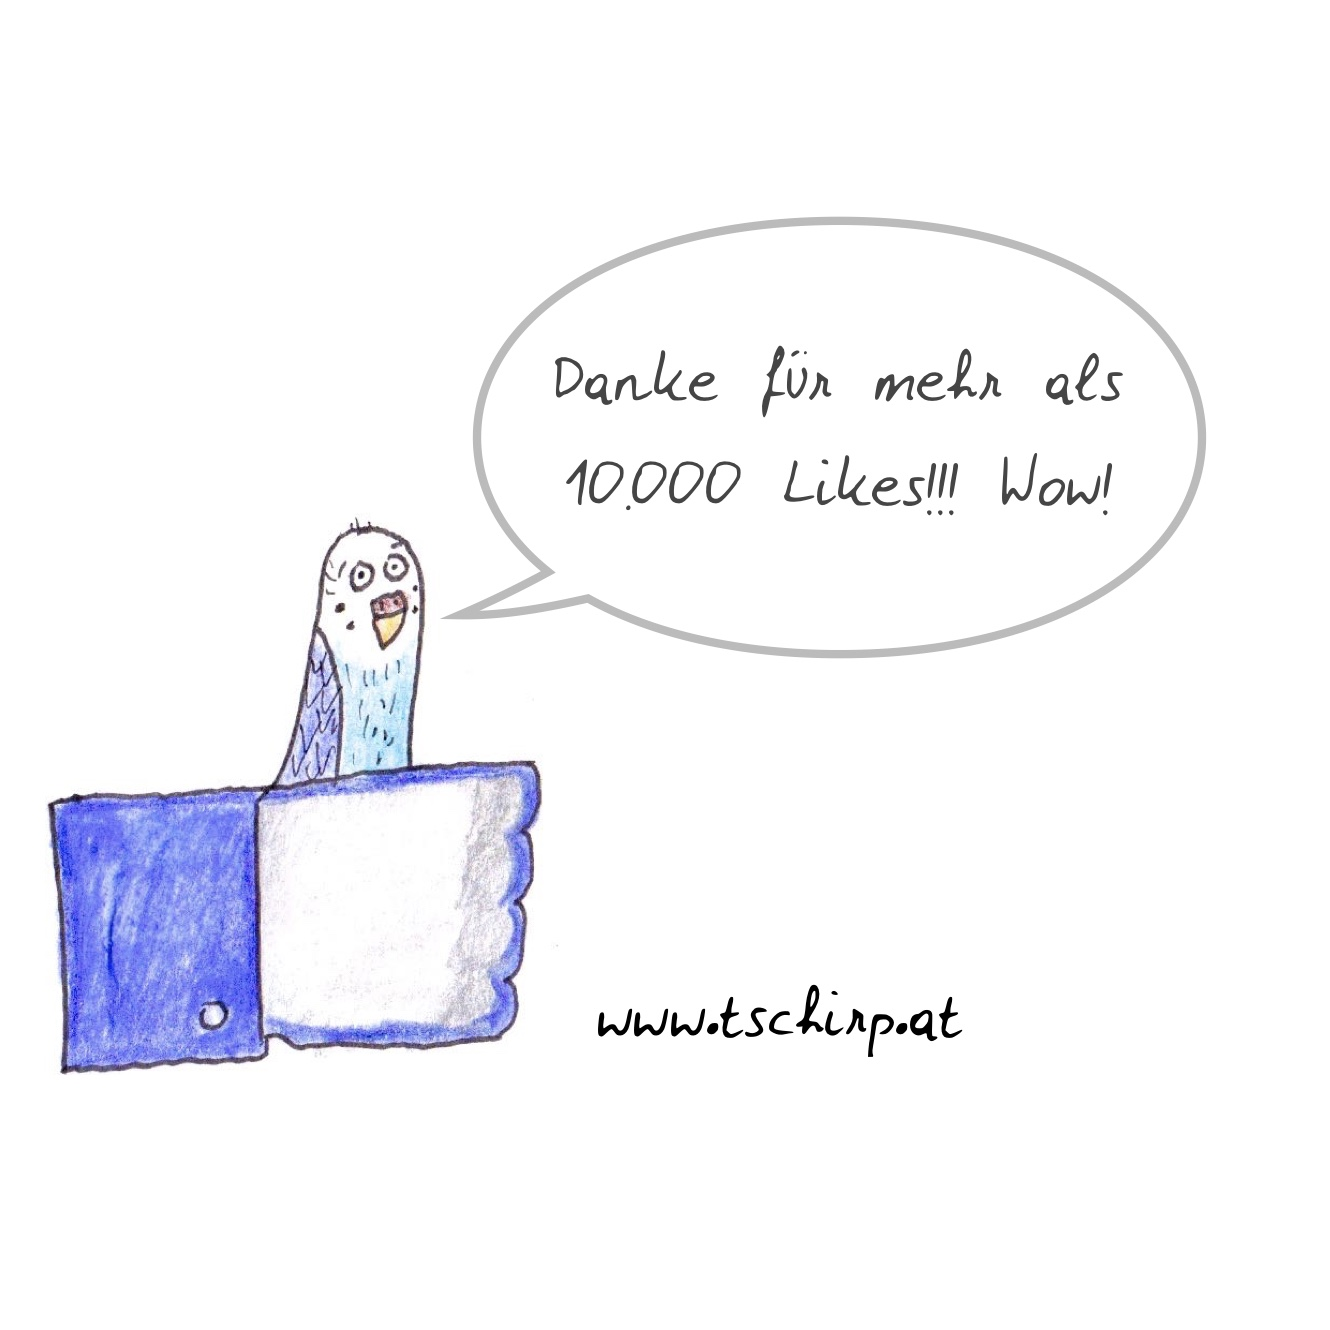 10000 likes, Facebook, Tschirp, Wellensittich